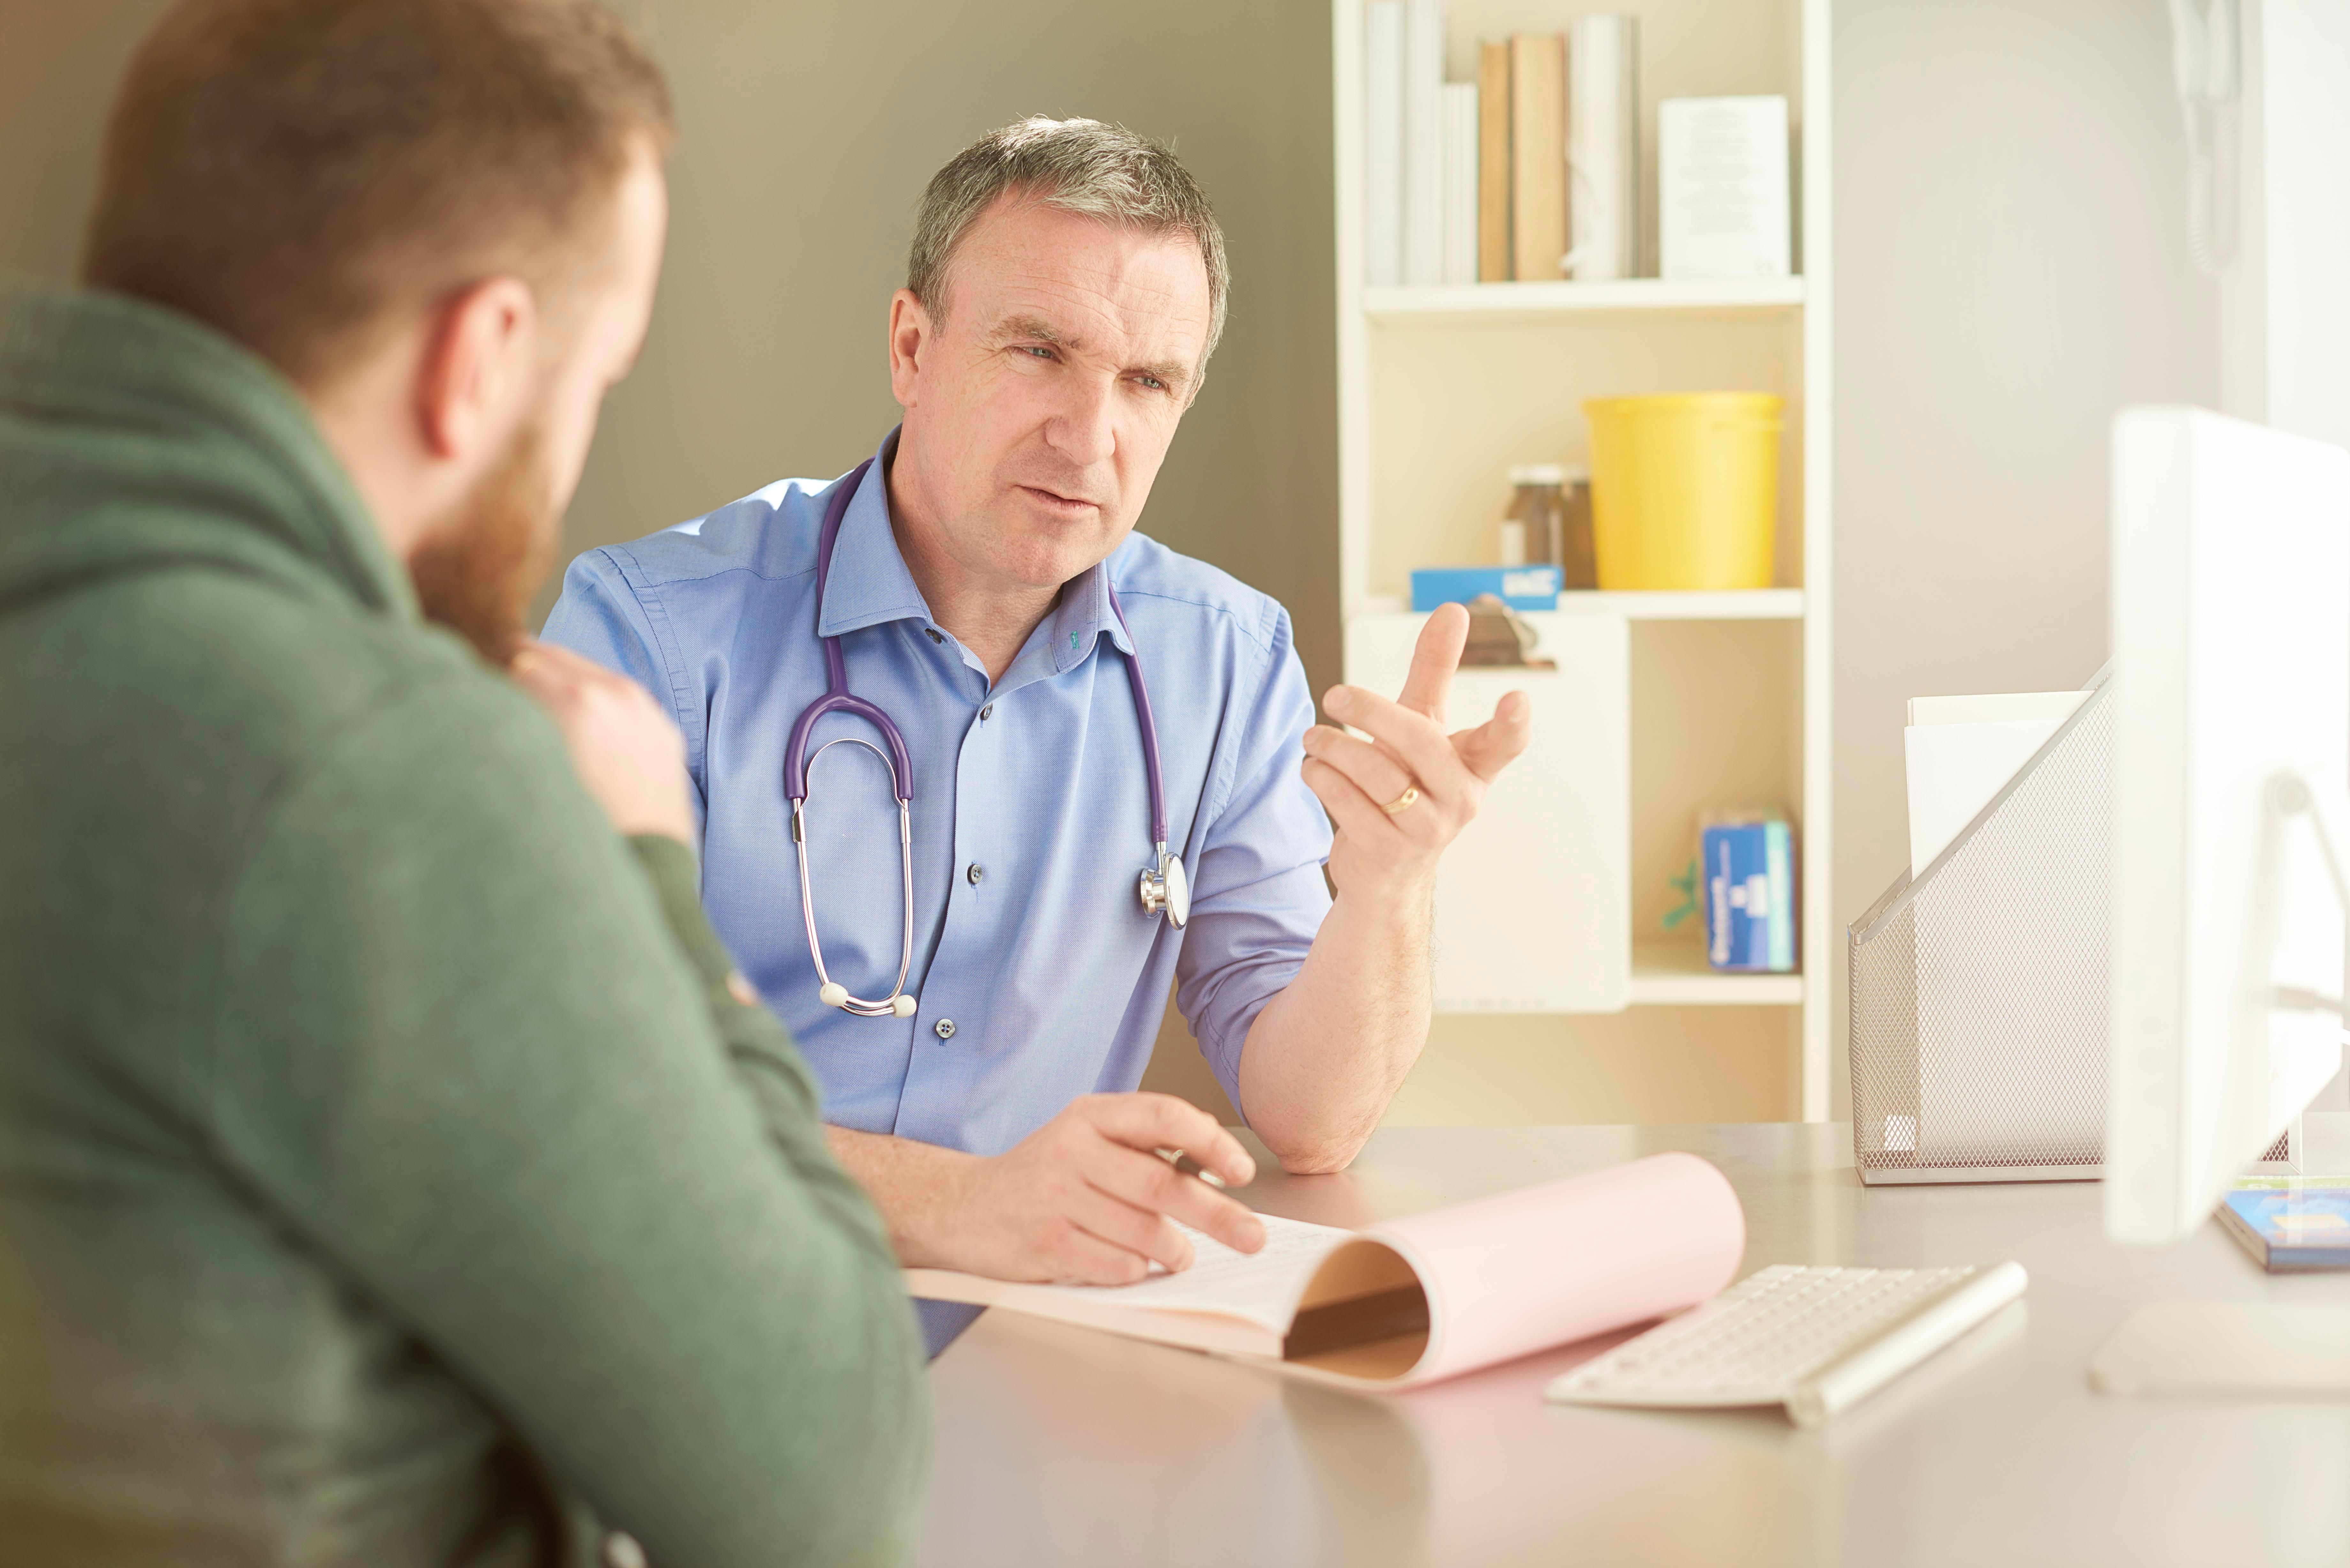 GP waiting lists rise thanks to retiring doctors